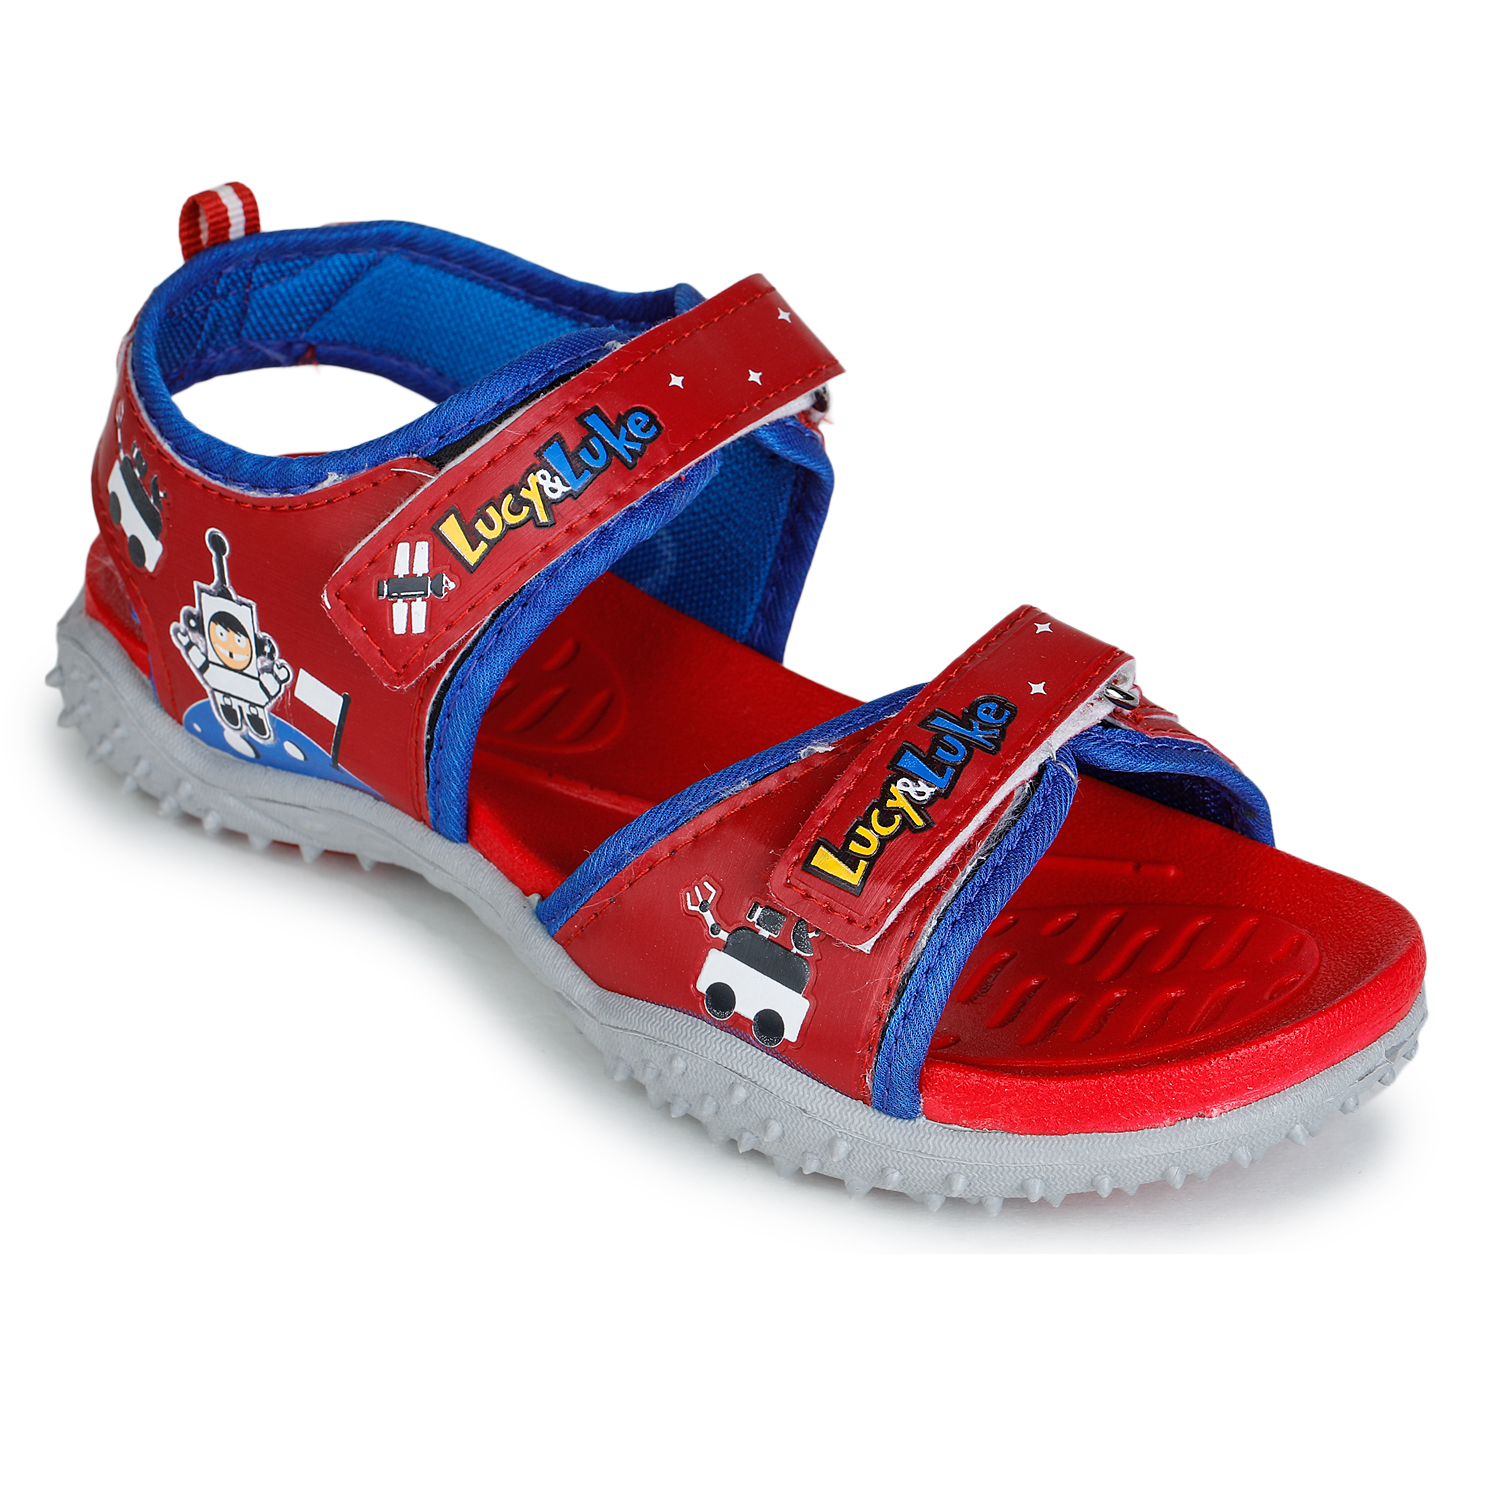 Liberty | Liberty LUCY & LUKE Sandals 8074-206_RED For - Boys